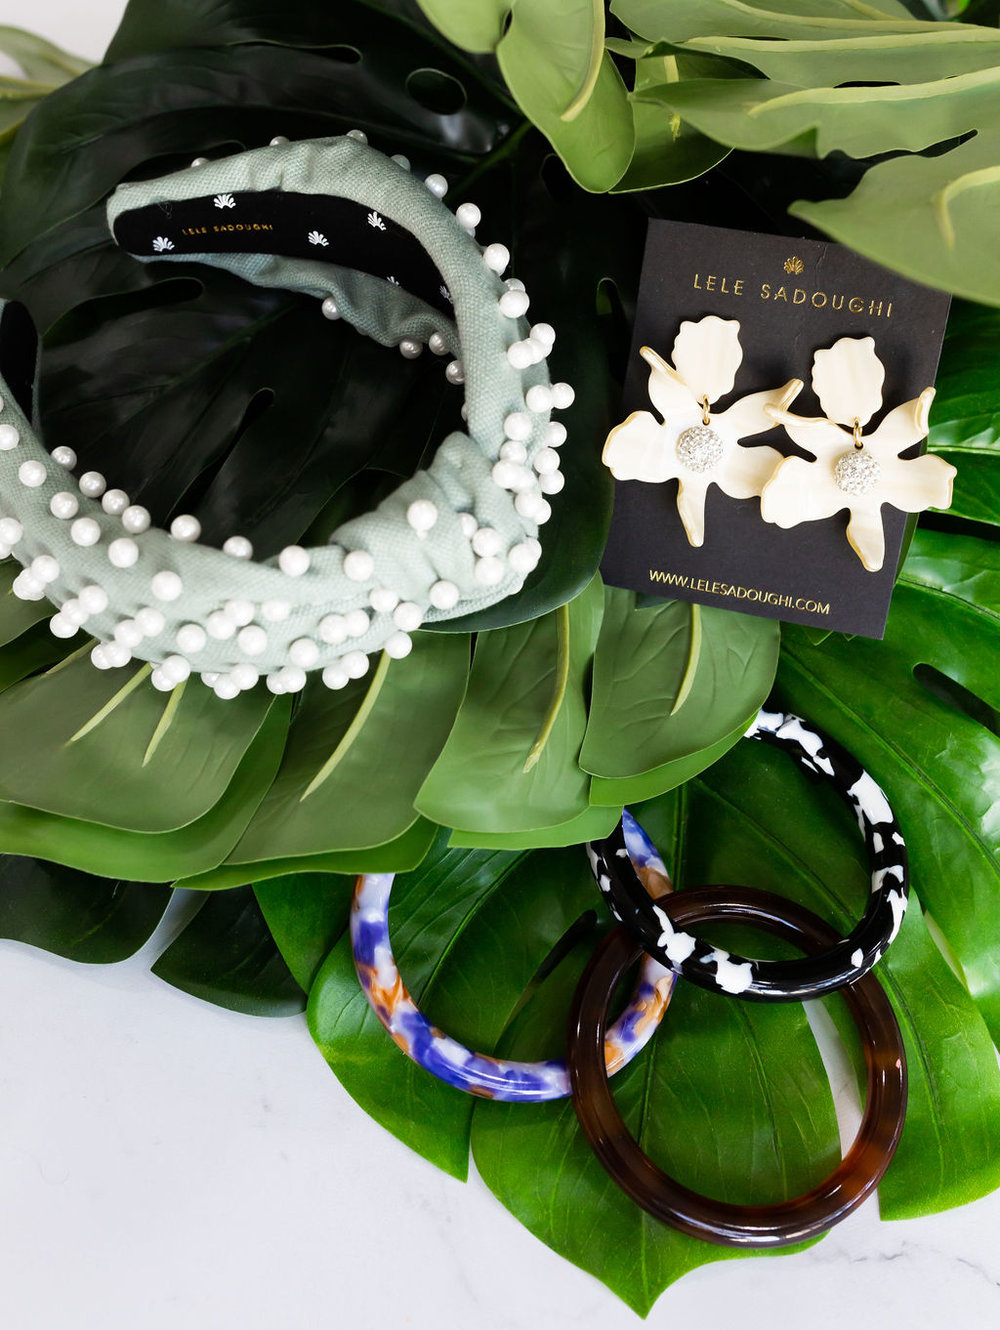 Always Accessorize - Have you tried Lele Sadoughi?